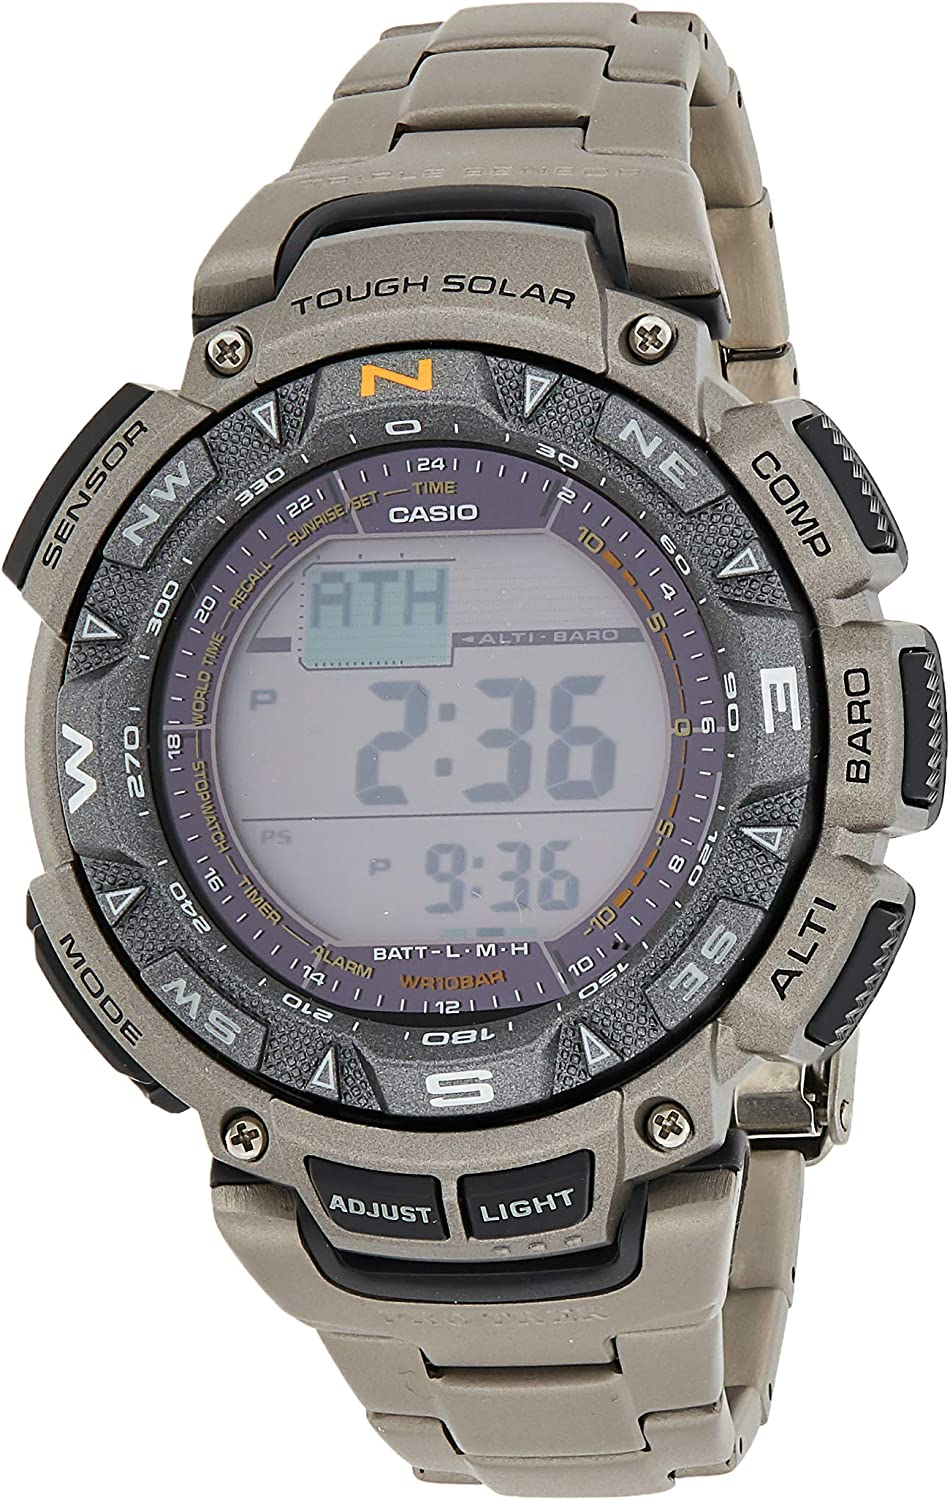 Casio Men PRO TREK Sport PRG240T PRG-240T-7D